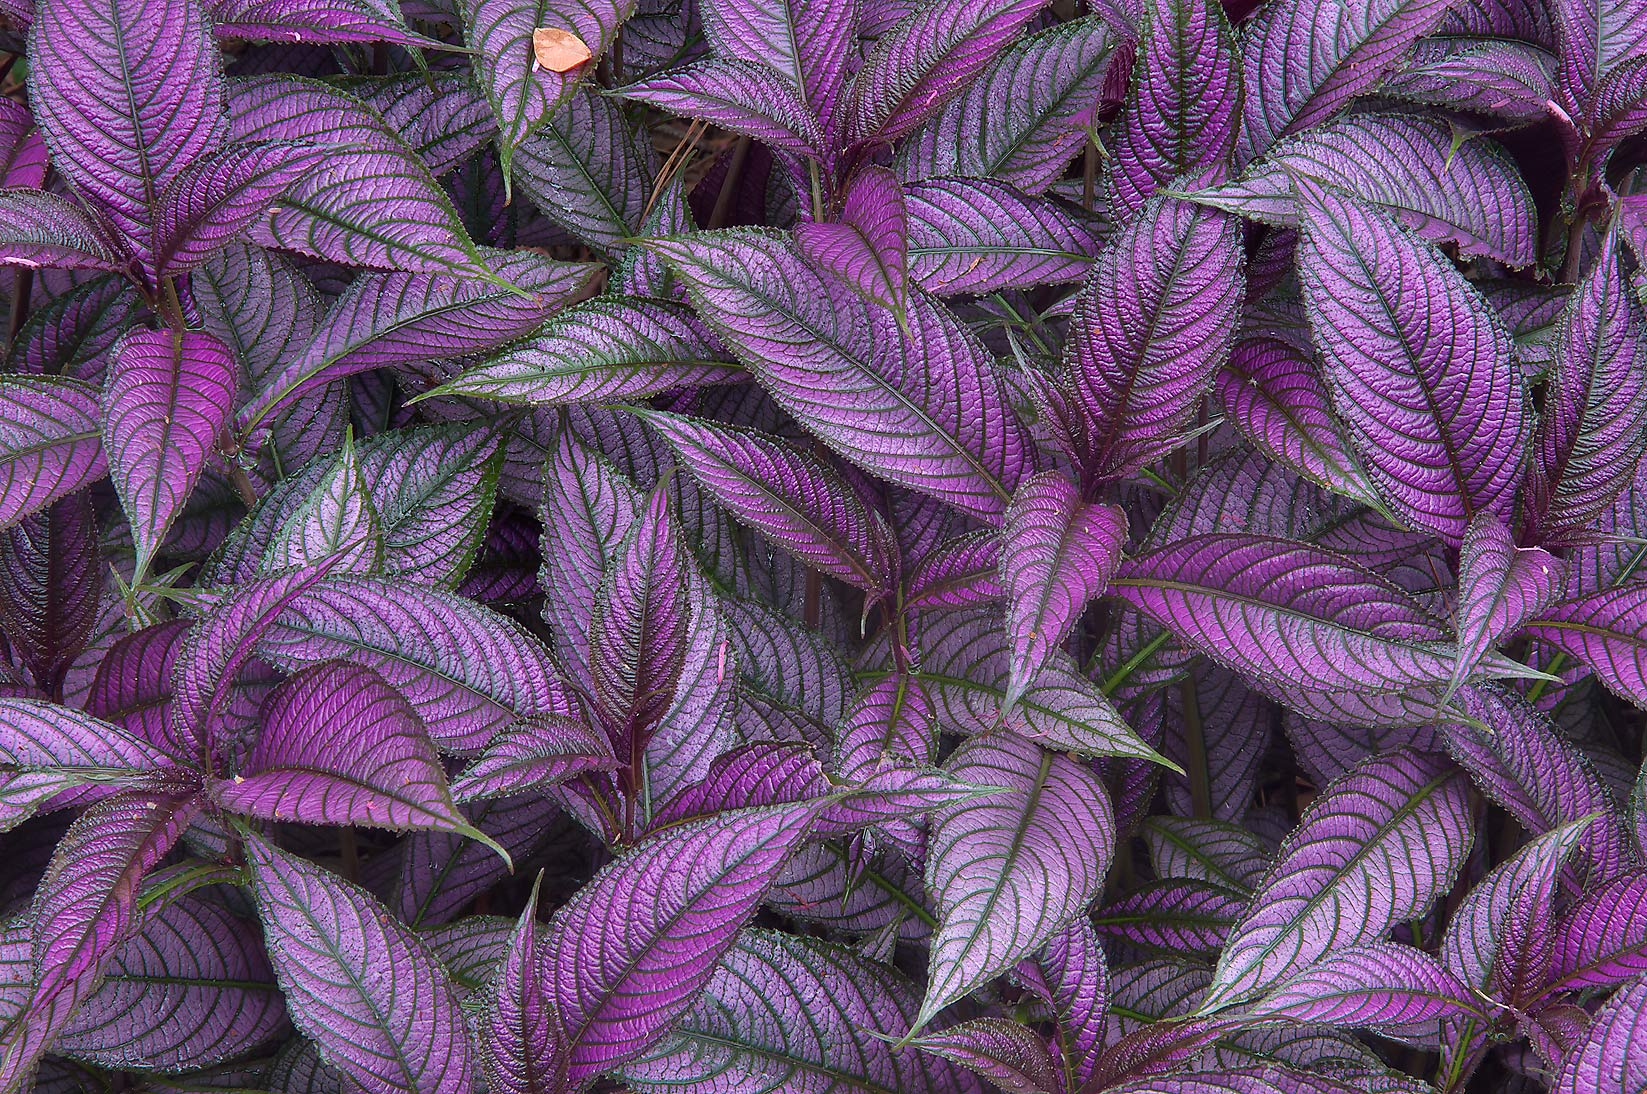 Violet leaves of Persian Shield (Strobilanthes...Gardens. Humble (Houston area), Texas